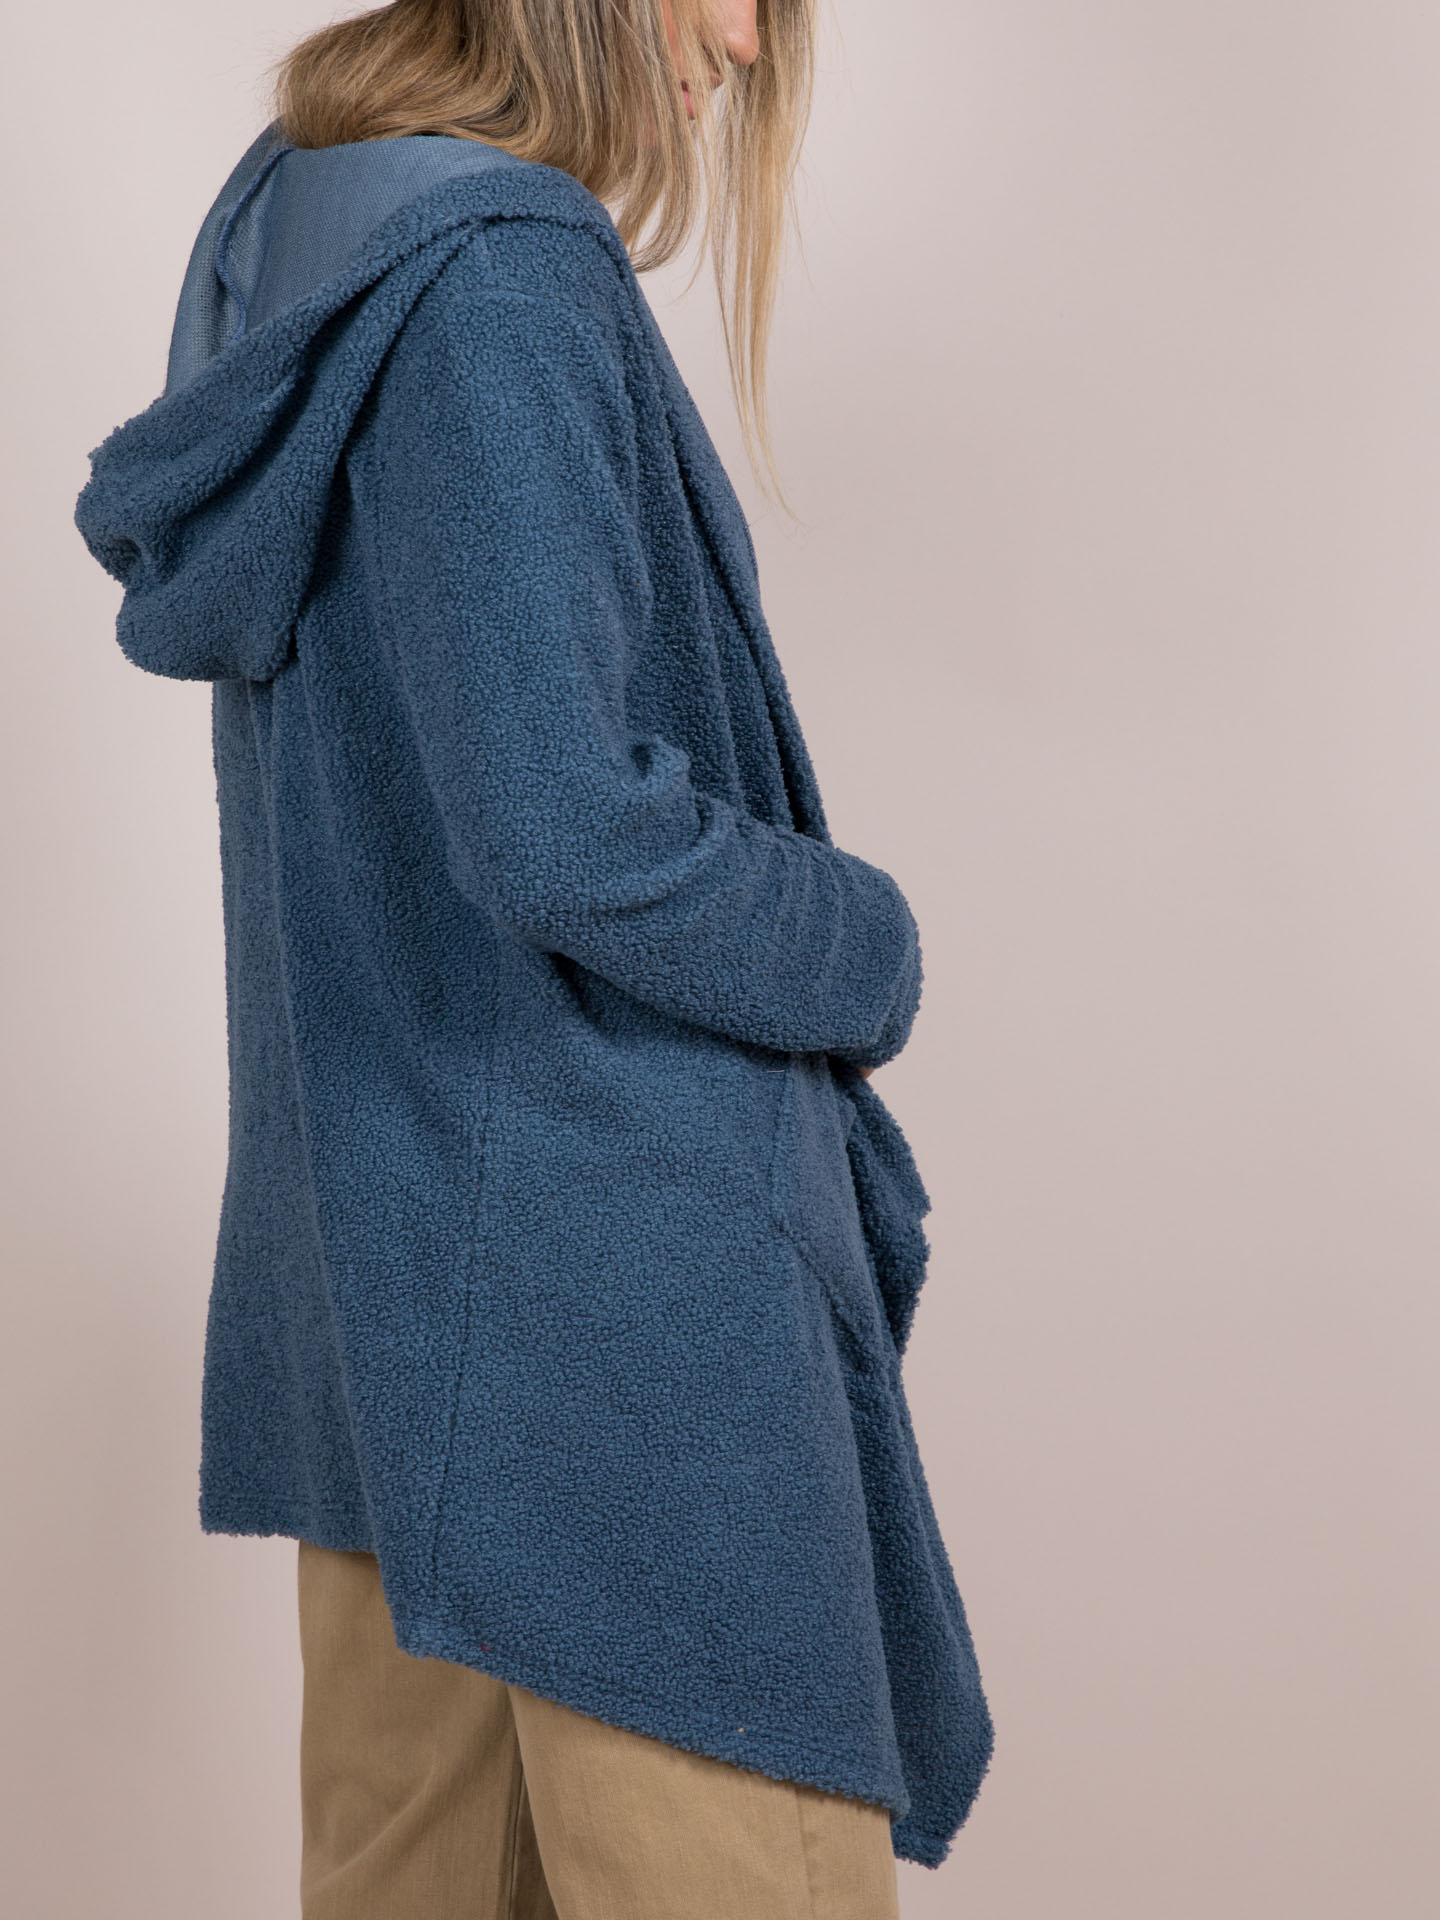 Couch Potato Cardigan  Cuddle Up Hoodie